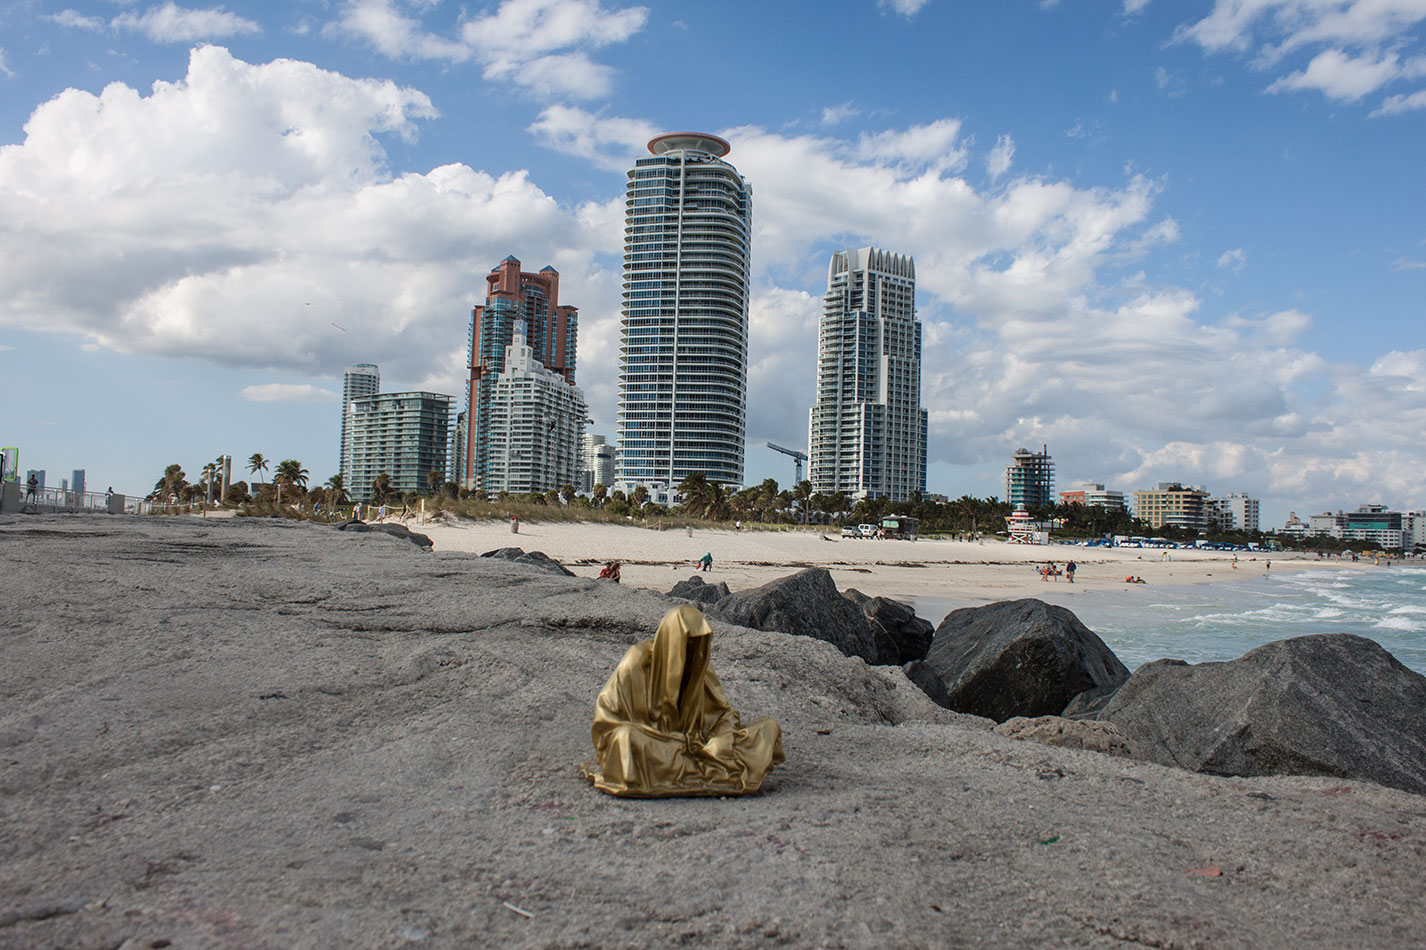 public-art-basel-miami-beach-fair-usa-florida-guardians-of-time-manfred-kili-kielnhofer-contemporary-fine-art-modern-arts-design-antiques-sculpture-6893